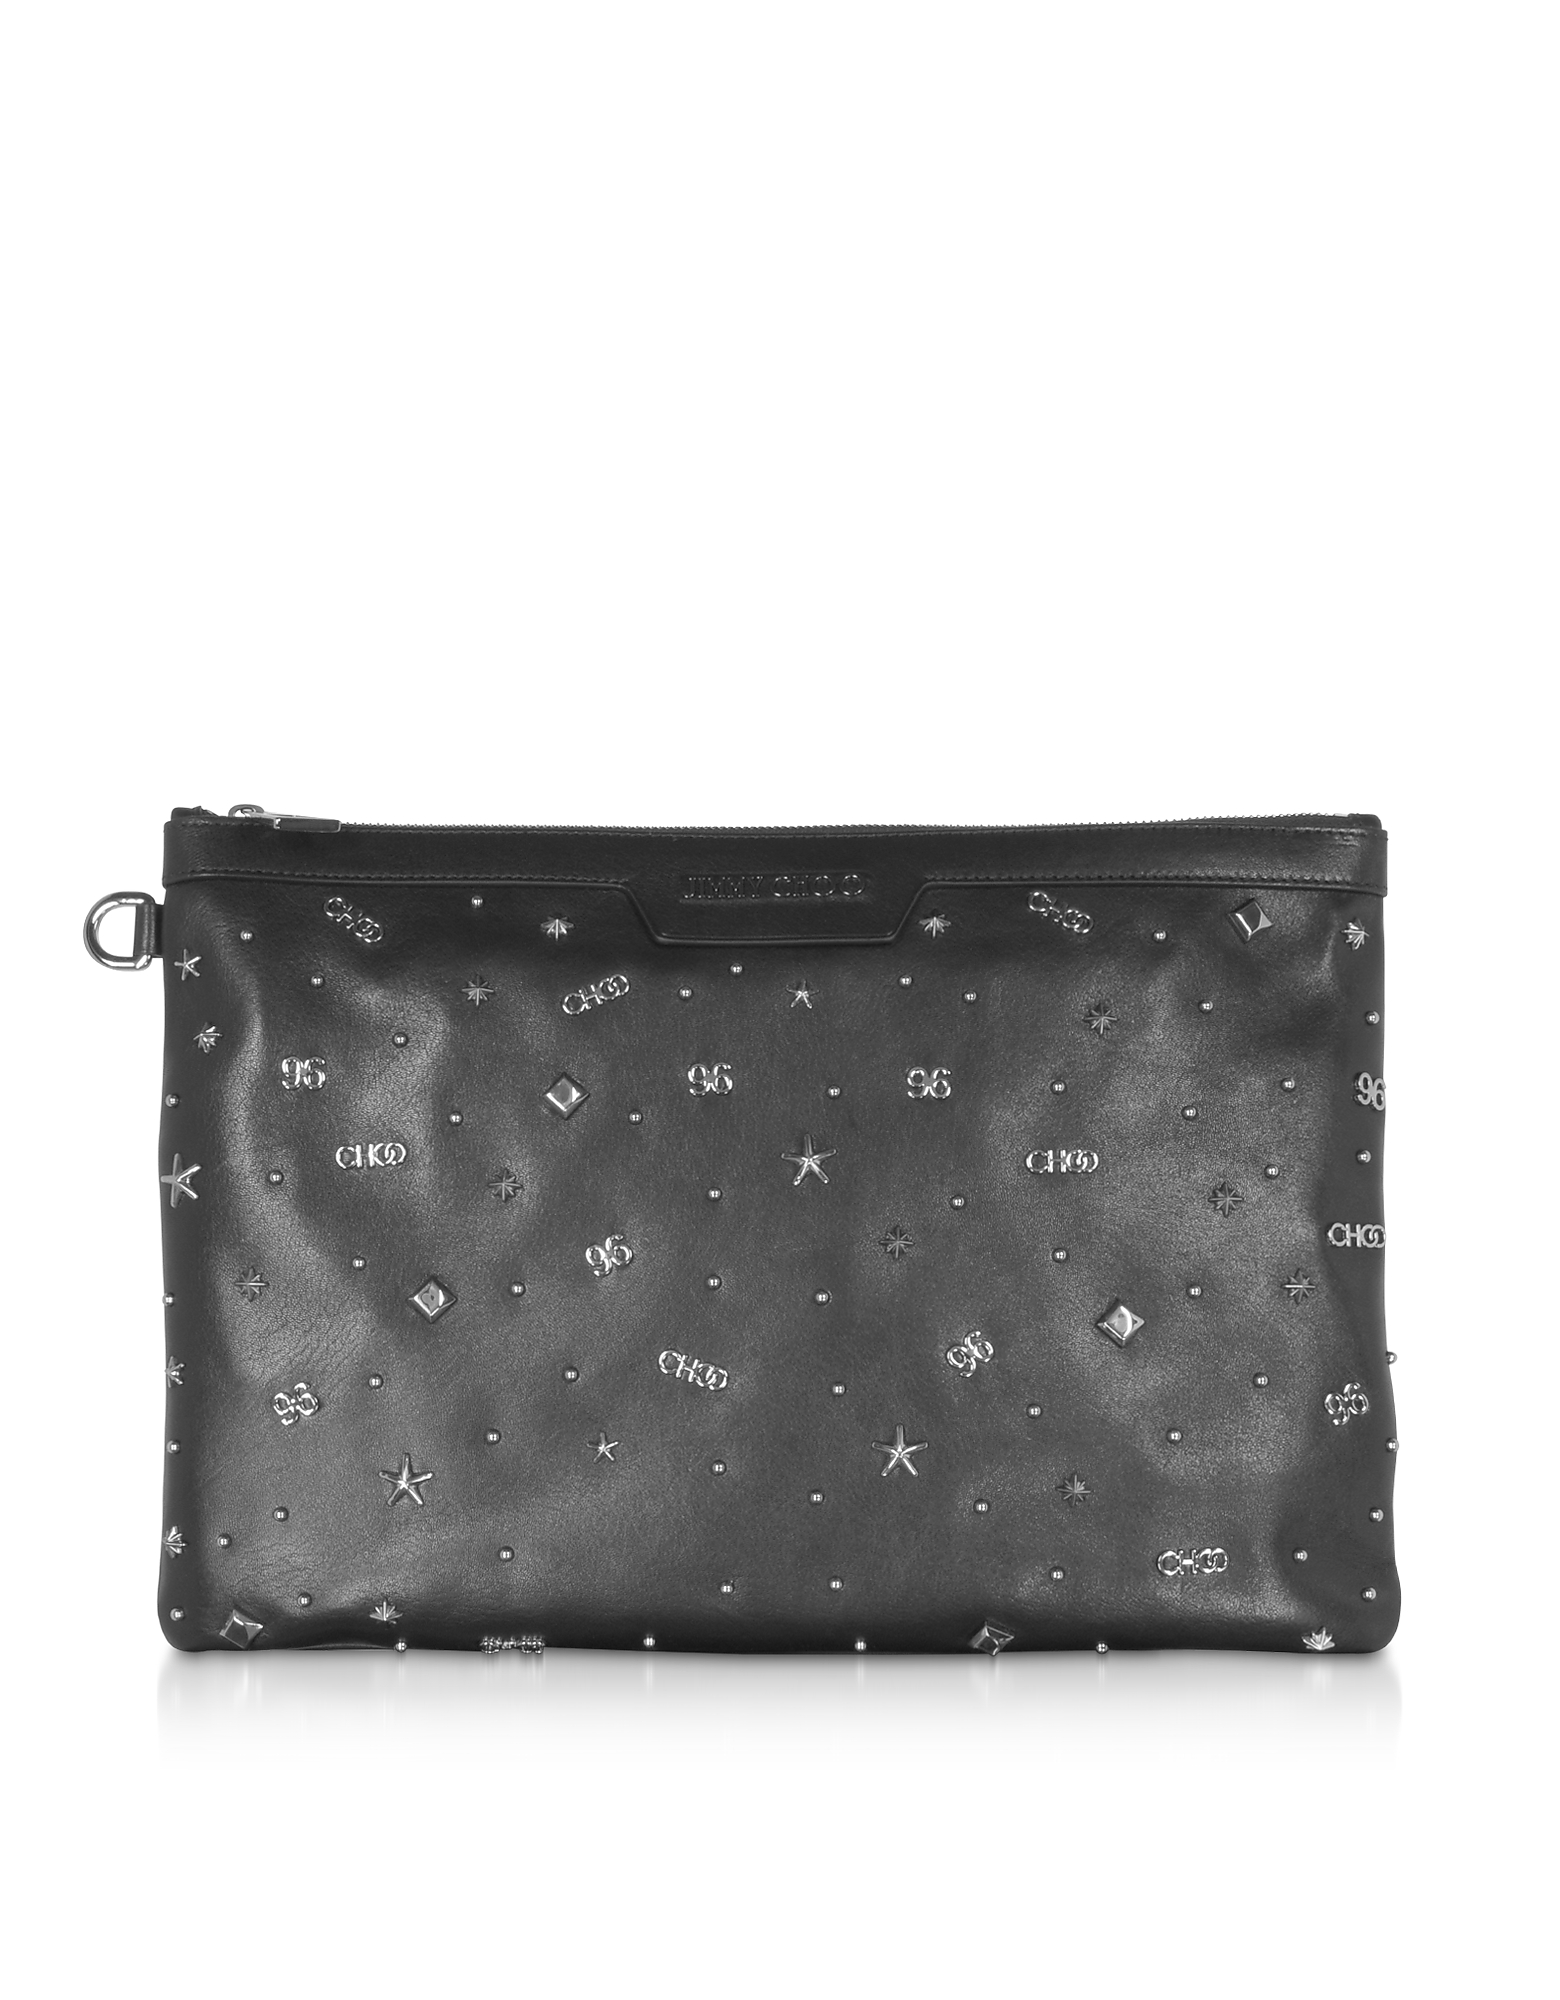 Black Leather DEREK Medium Clutch